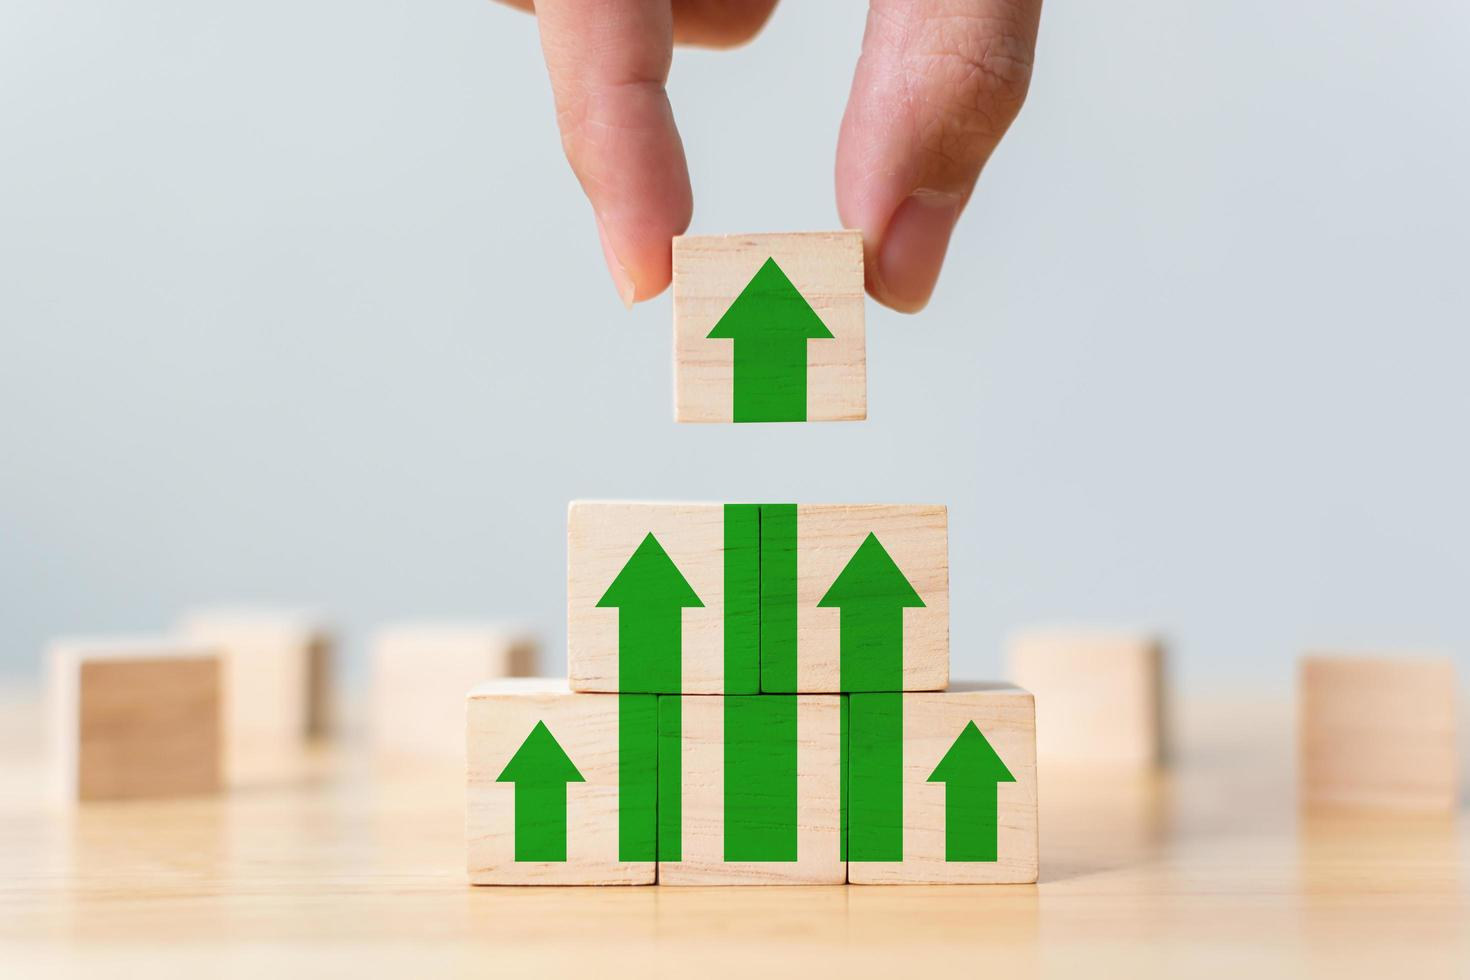 Ladder career path for business growth success process photo